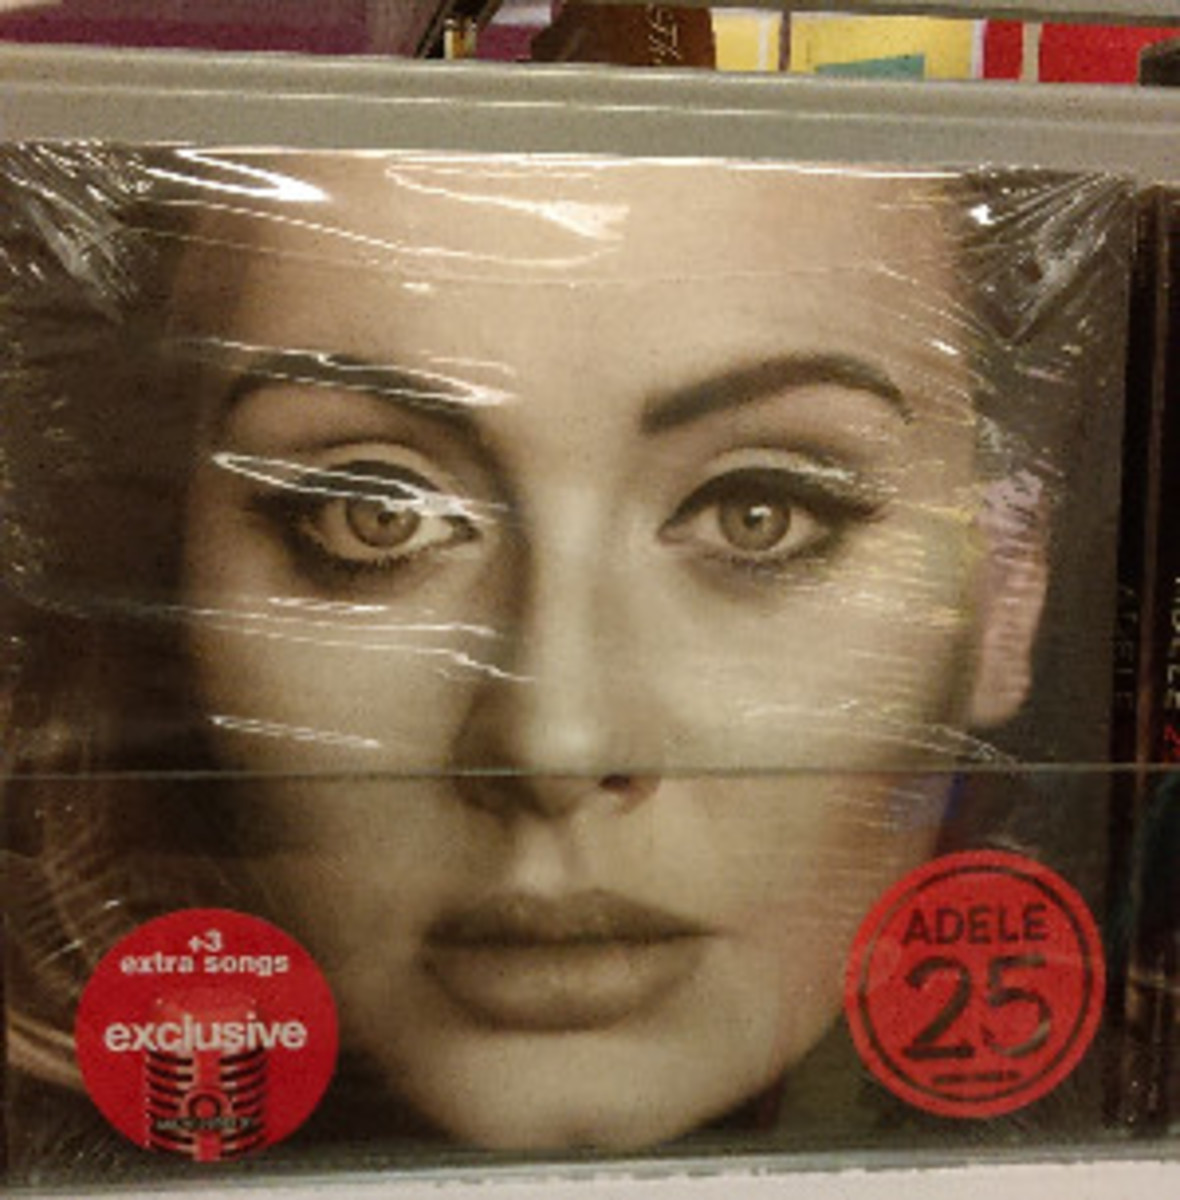 Adele's new album 25, was released November 20, and exclusively at Target three bonus are included in the album.